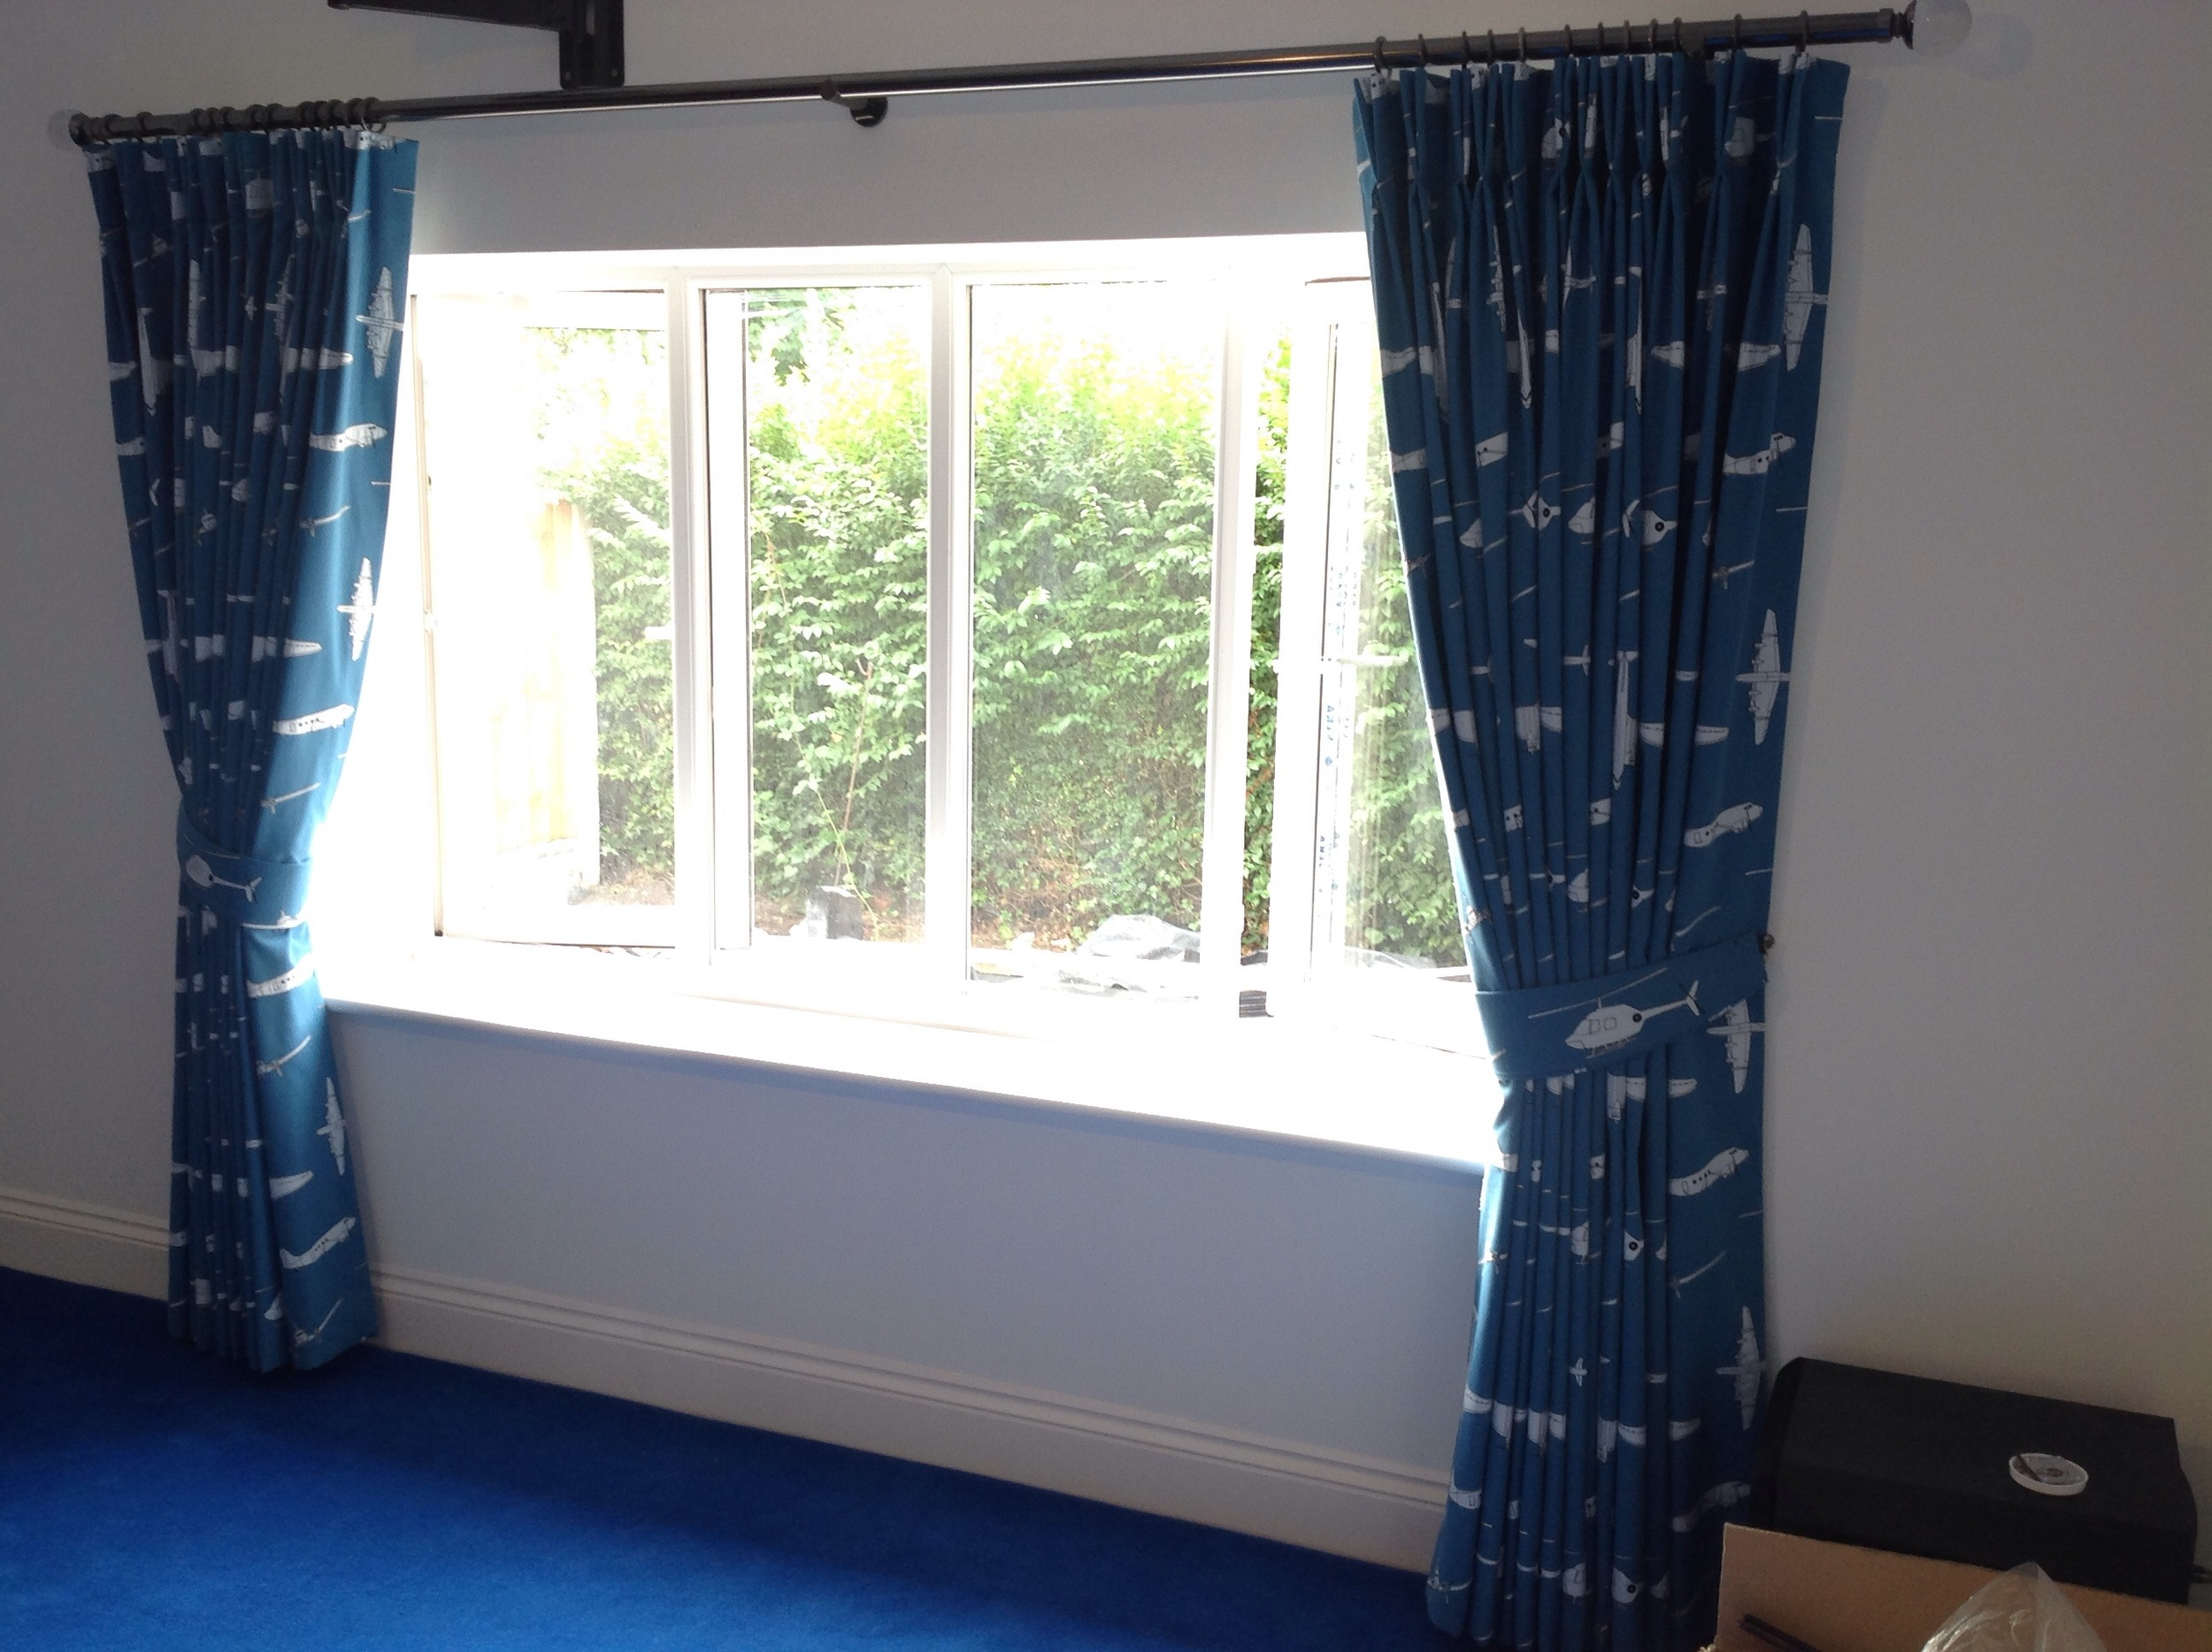 Playroom curtains